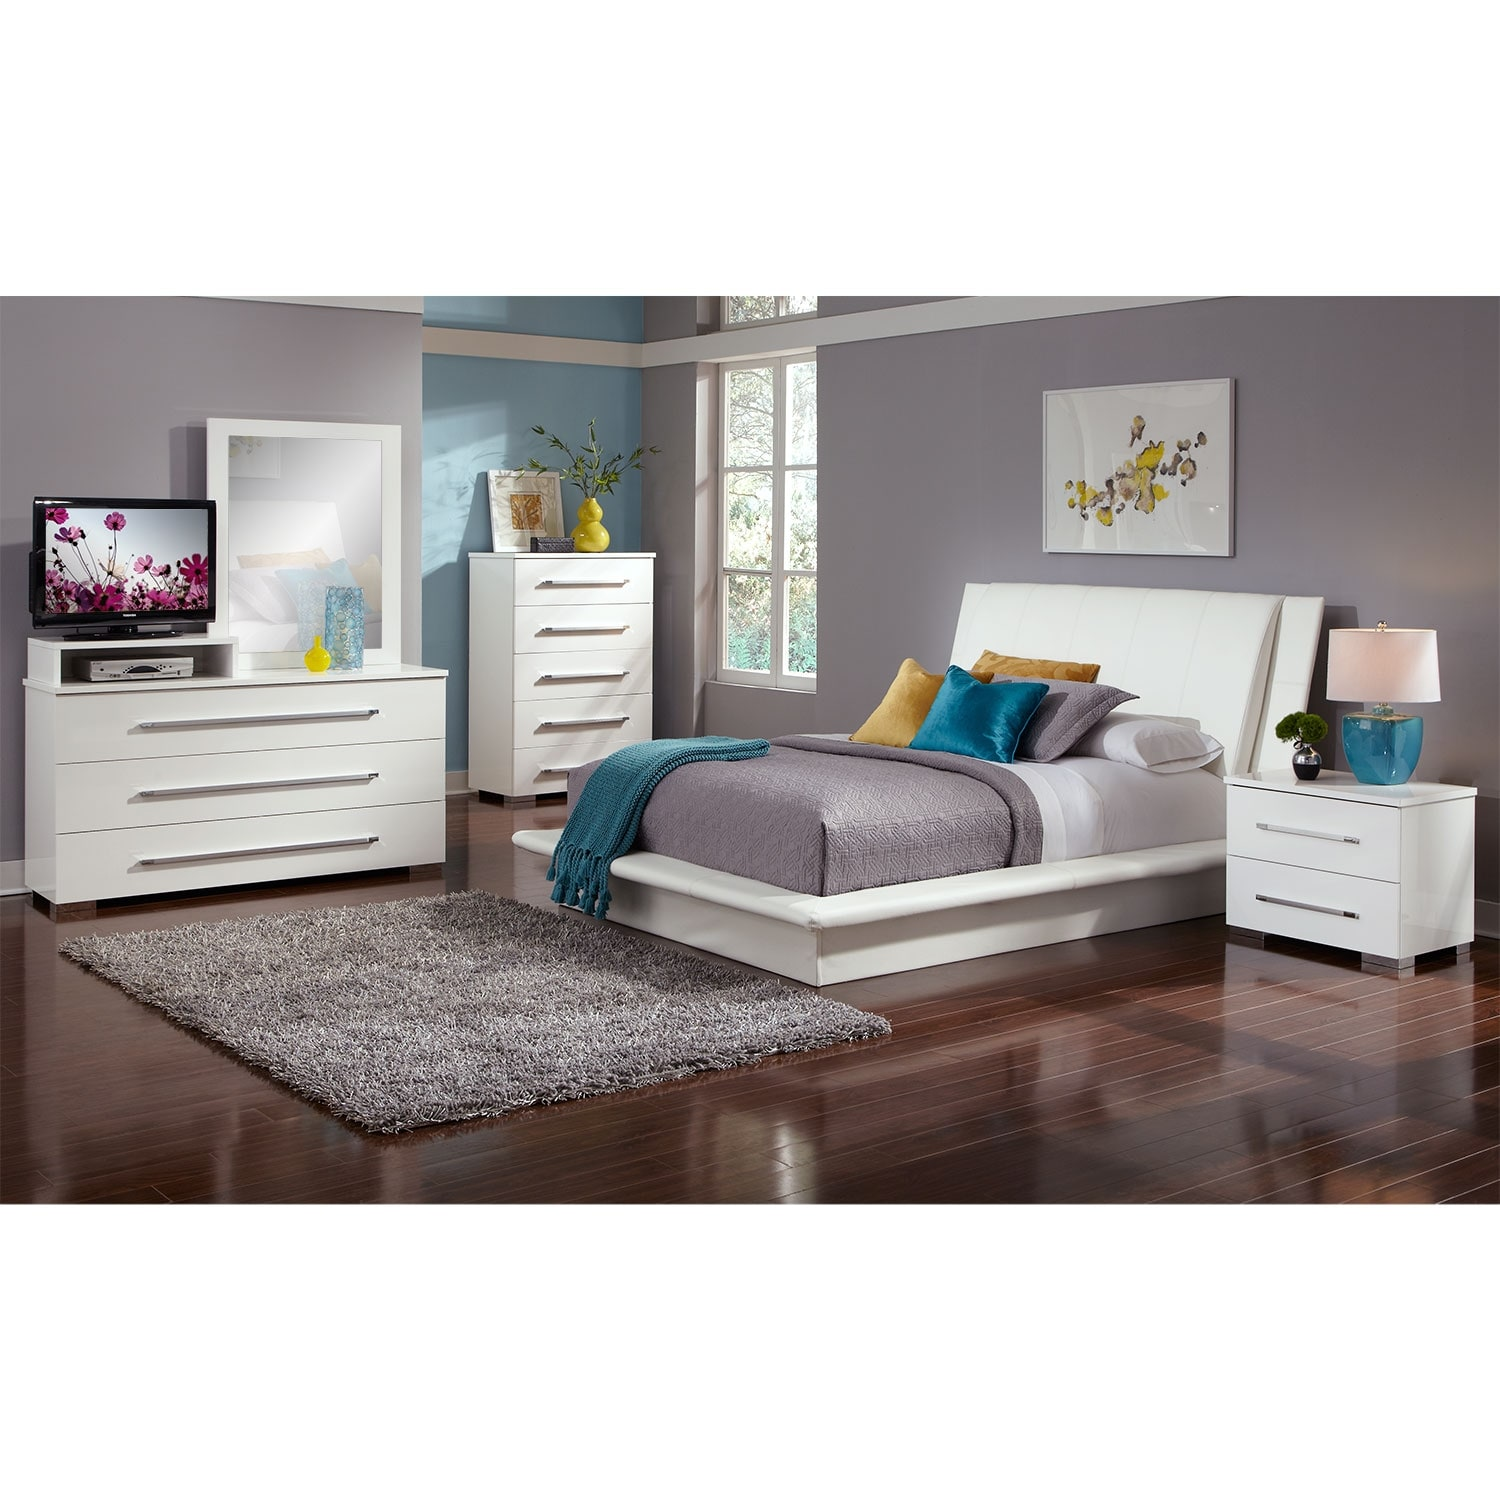 city furniture bedroom set dimora upholstered bed white value city 14825